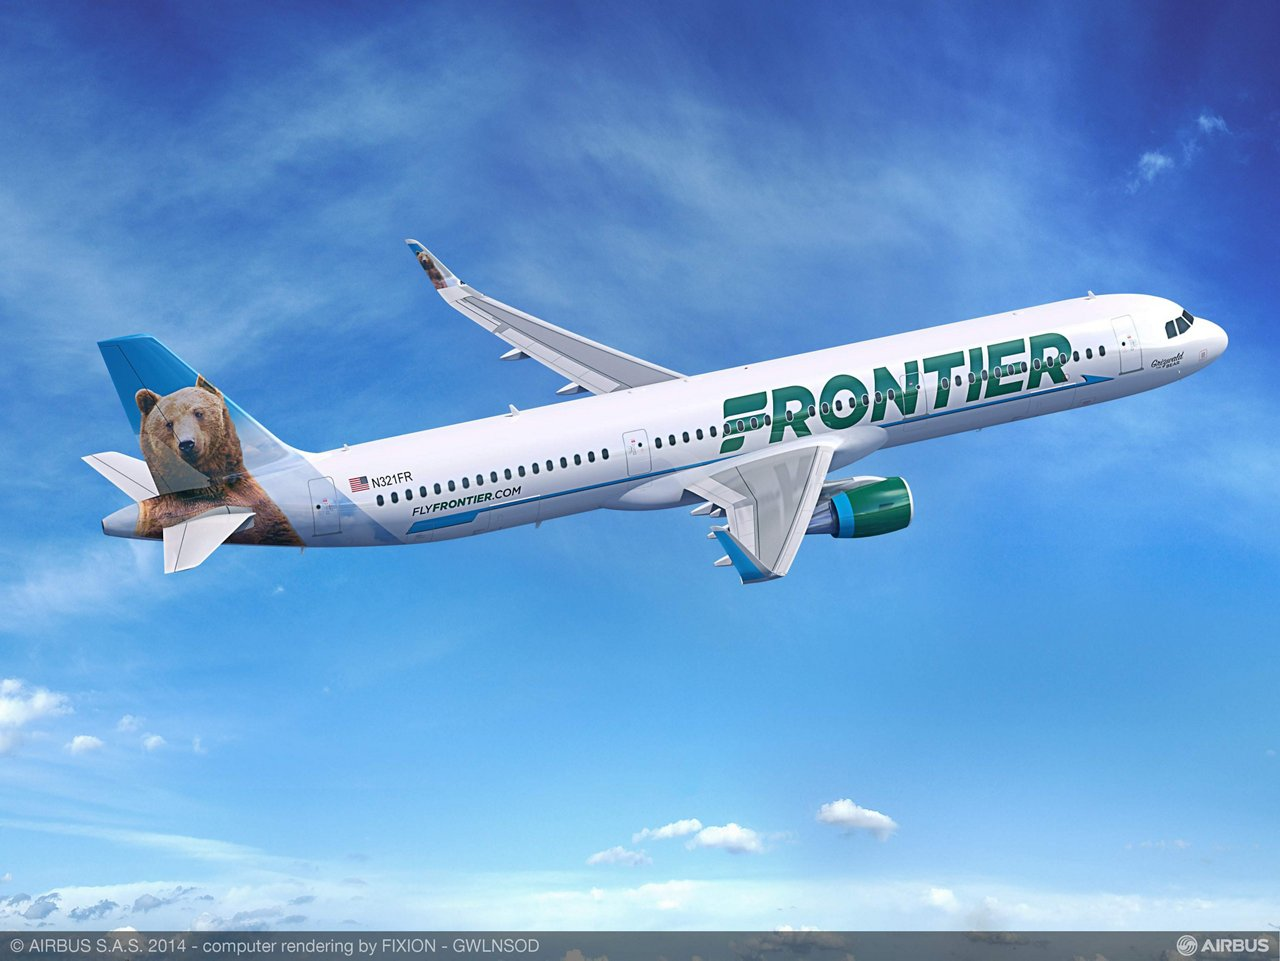 A321ceo_Frontier Airlines